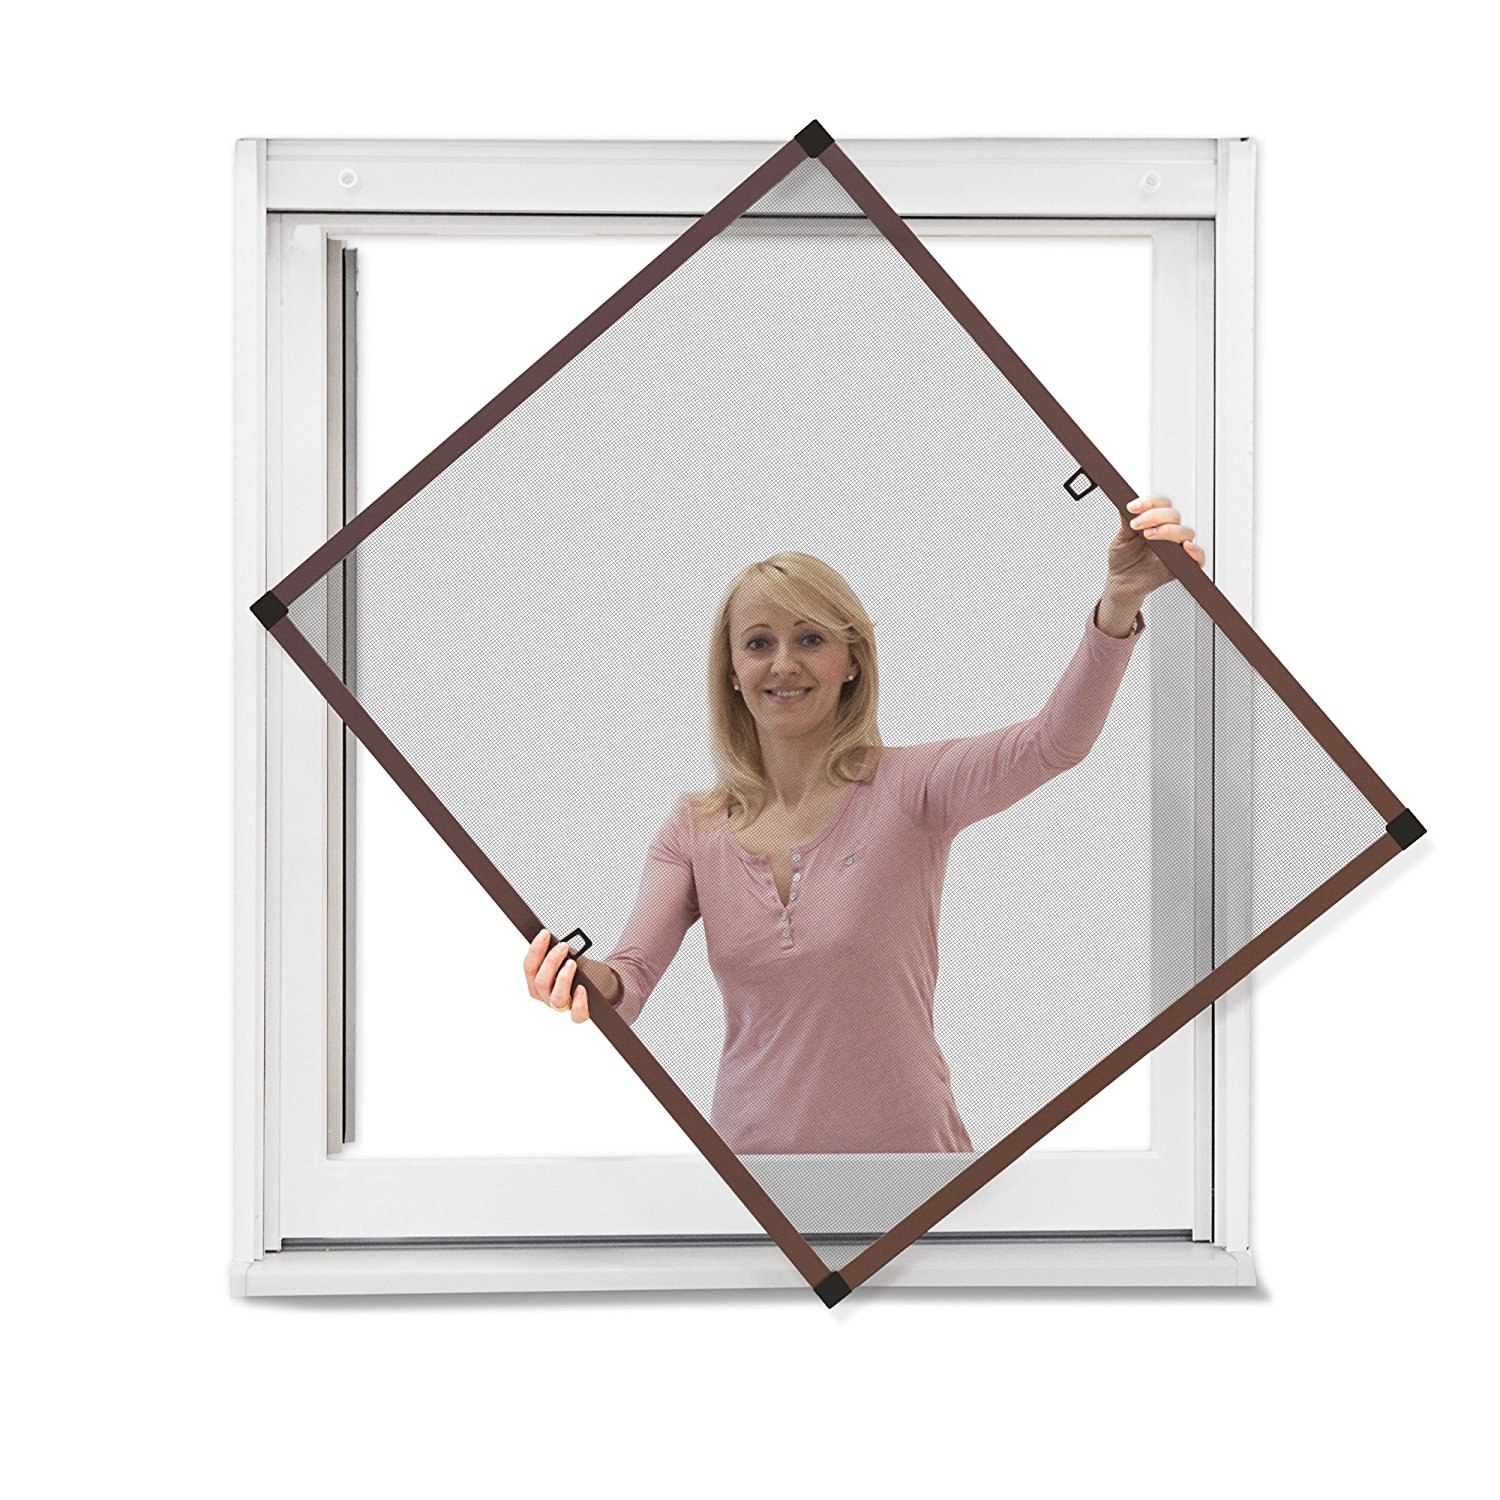 Smartex latest window screen frame with good price for preventing insects-1